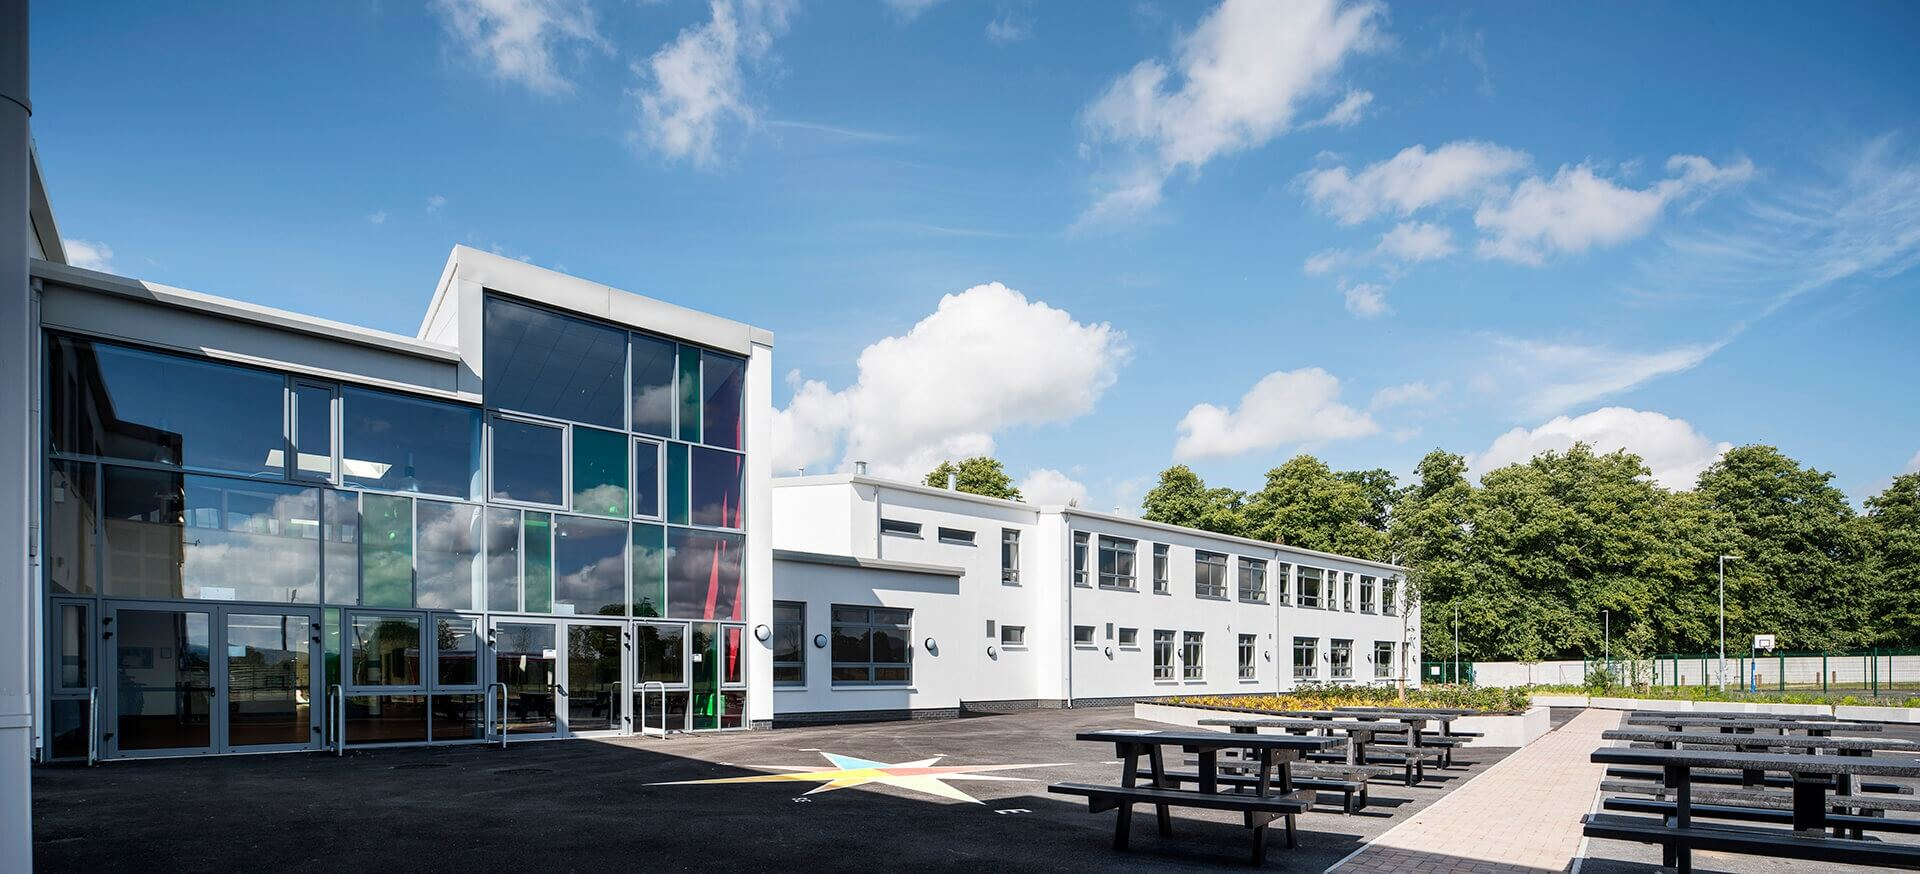 Comeragh College, Carrick-on-Suir, Tipperary - BAM Schools Bundle 4 PPP